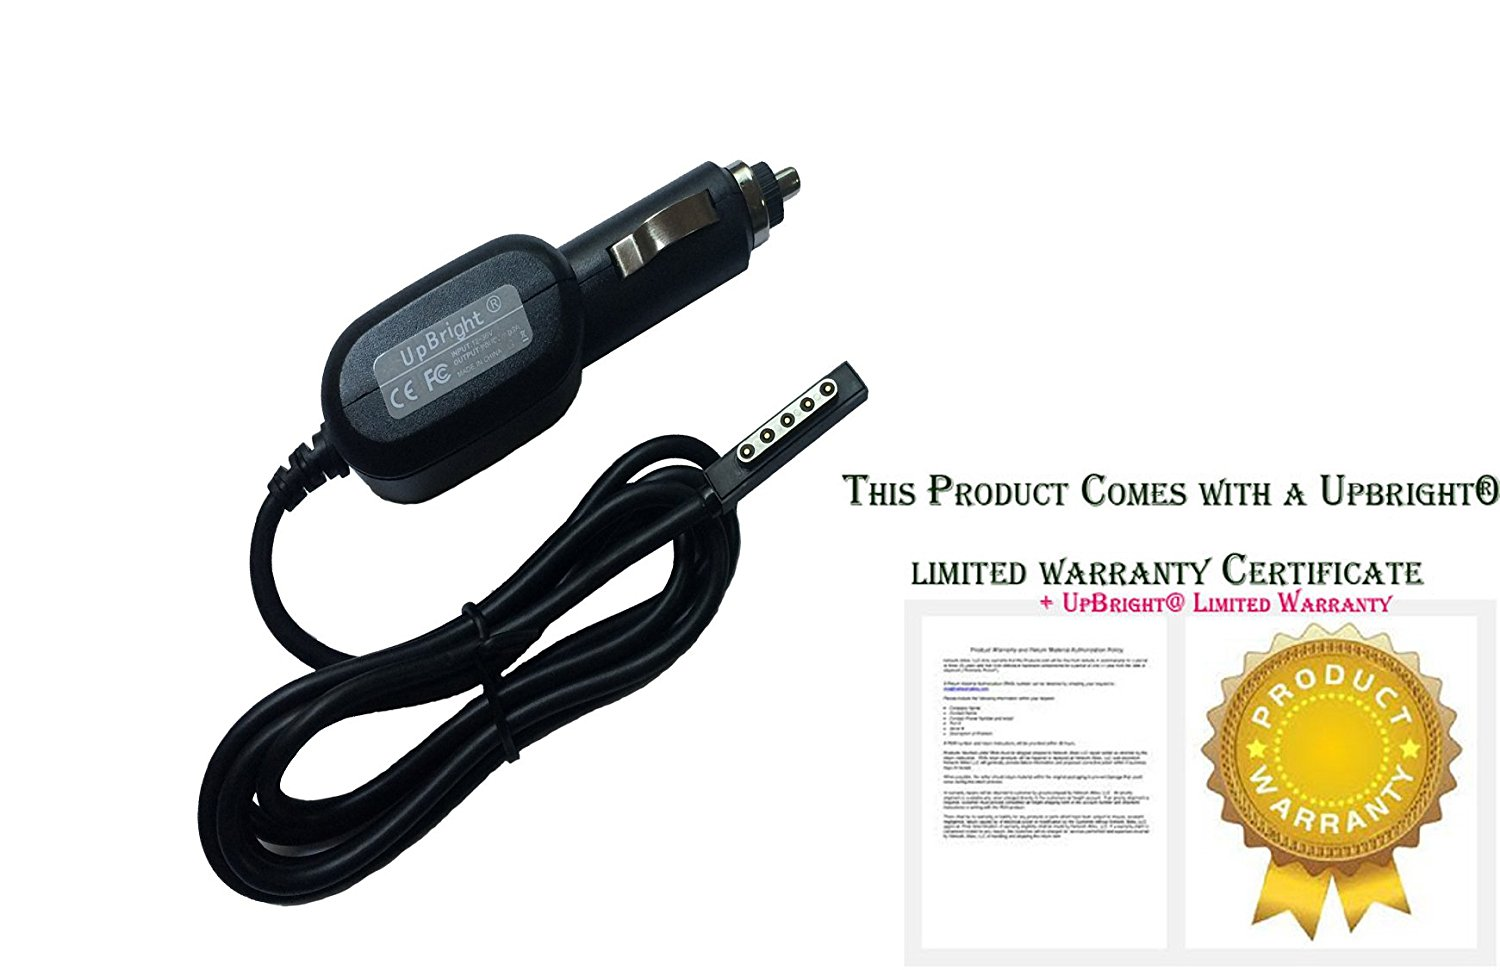 UpBright® NEW Car DC Adapter For Onite Microsoft Surface 10.6 RT Tablet PC, Onite Surface RT 10.6 Tablet Windows 8 12V 2A~4A Auto Vehicle Boat RV Cigarette Lighter Plug Power Supply Cord PS Battery Charger Cable PSU Output: 12V 3.6A